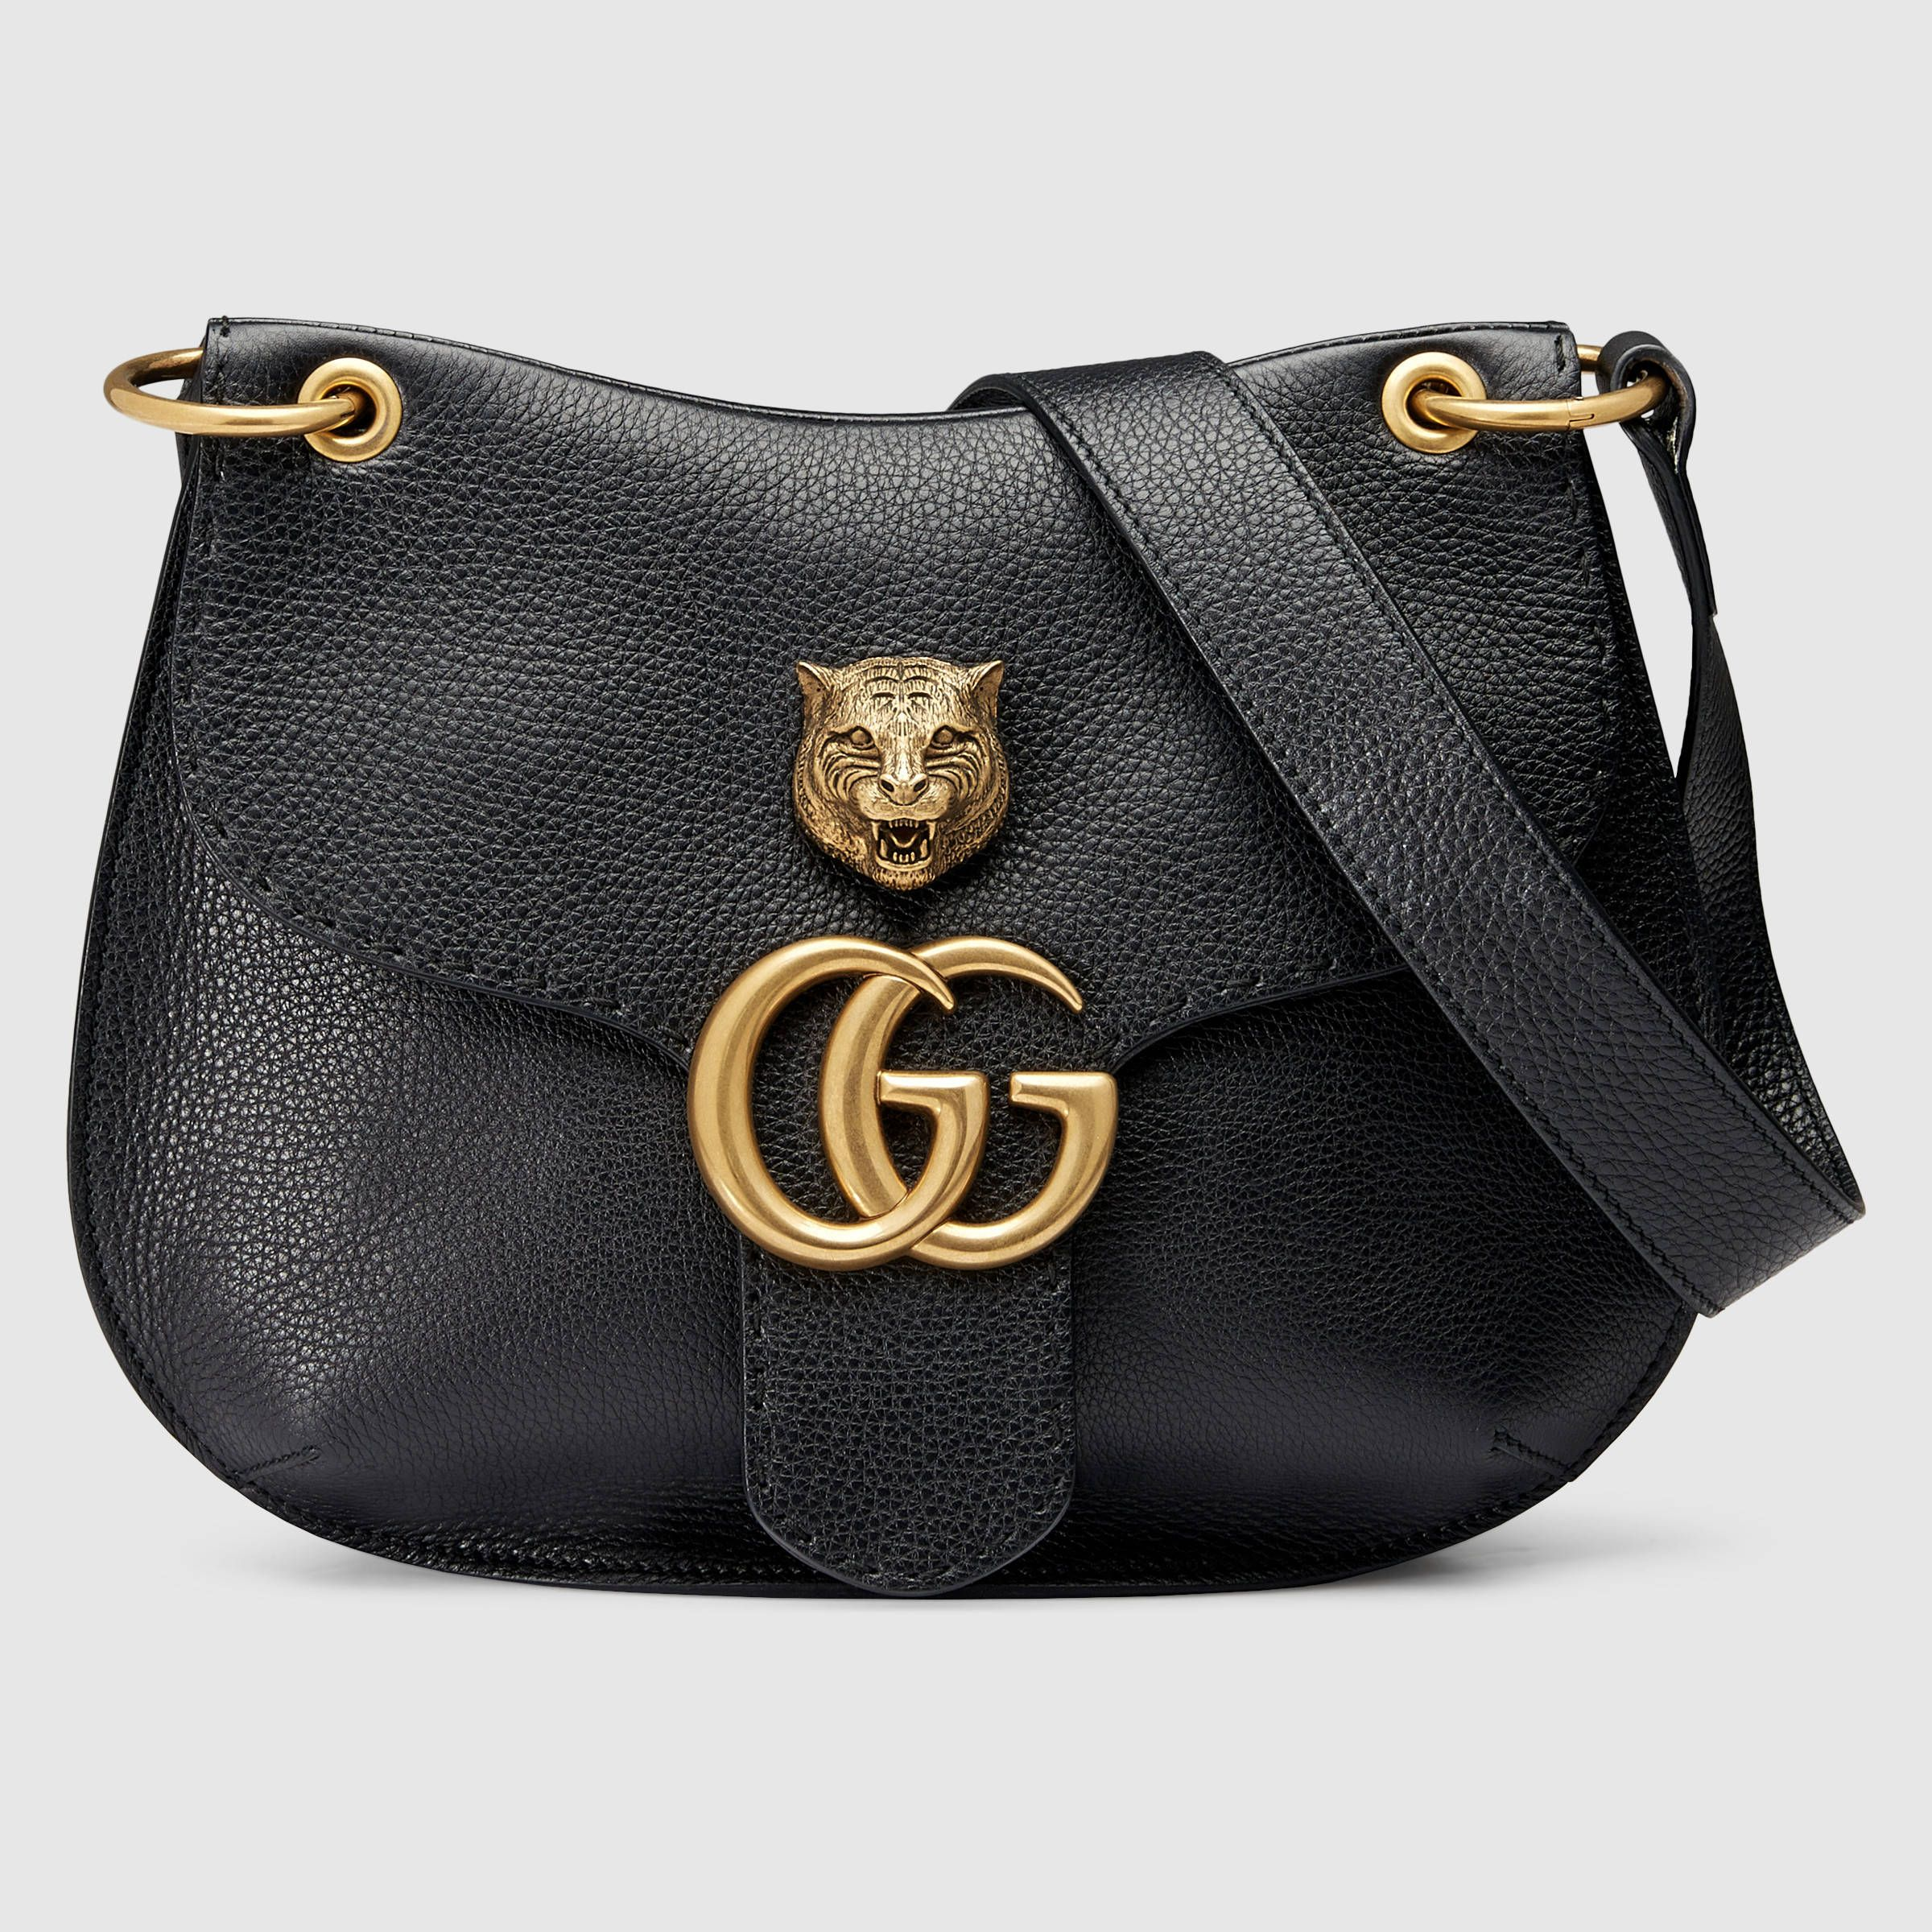 6ccdf5364 Gucci Women - GG Marmont leather shoulder bag - 409154A7M0T1000 ...